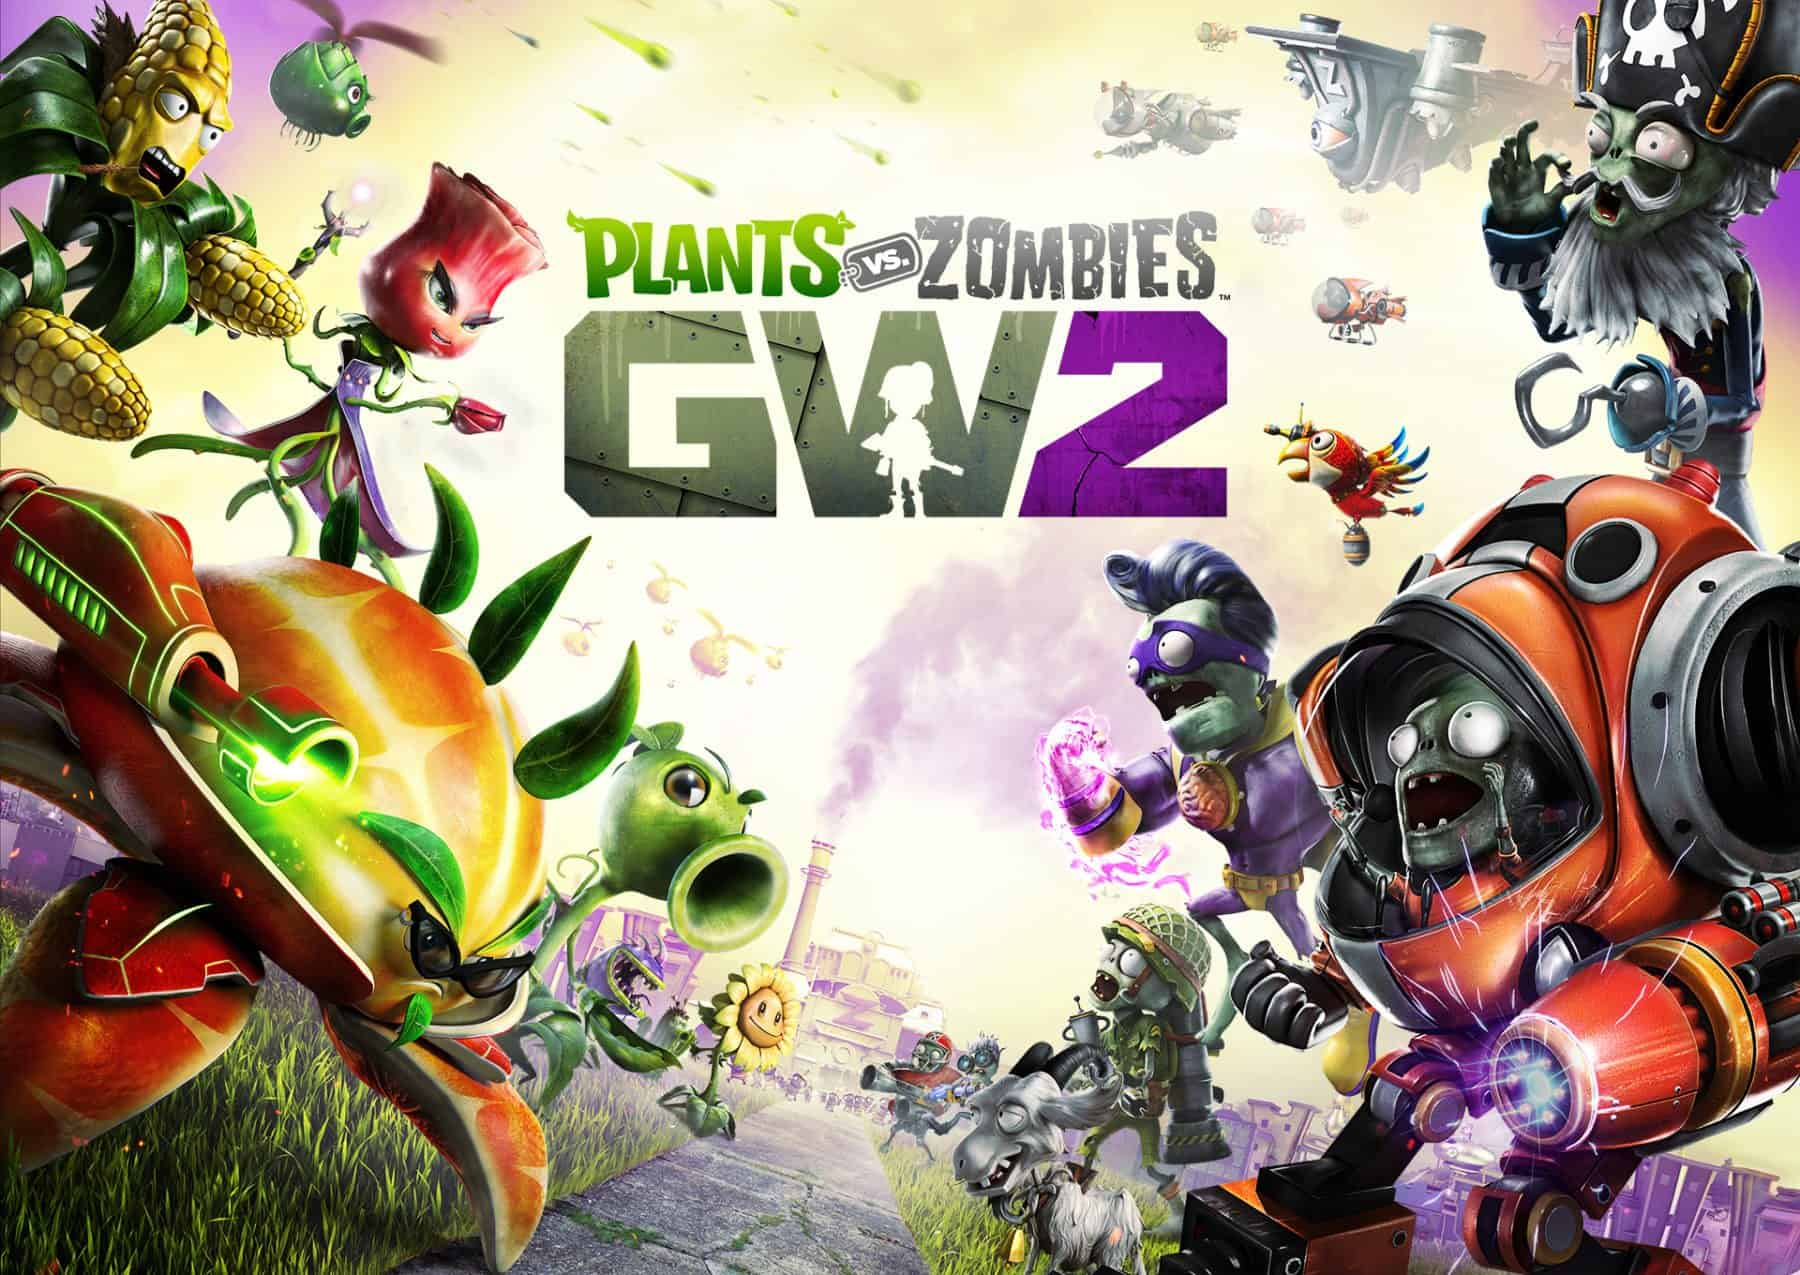 warfare xbox final garden zombies dailymotion wvg bosses pc super gameplay one war vs all video plants